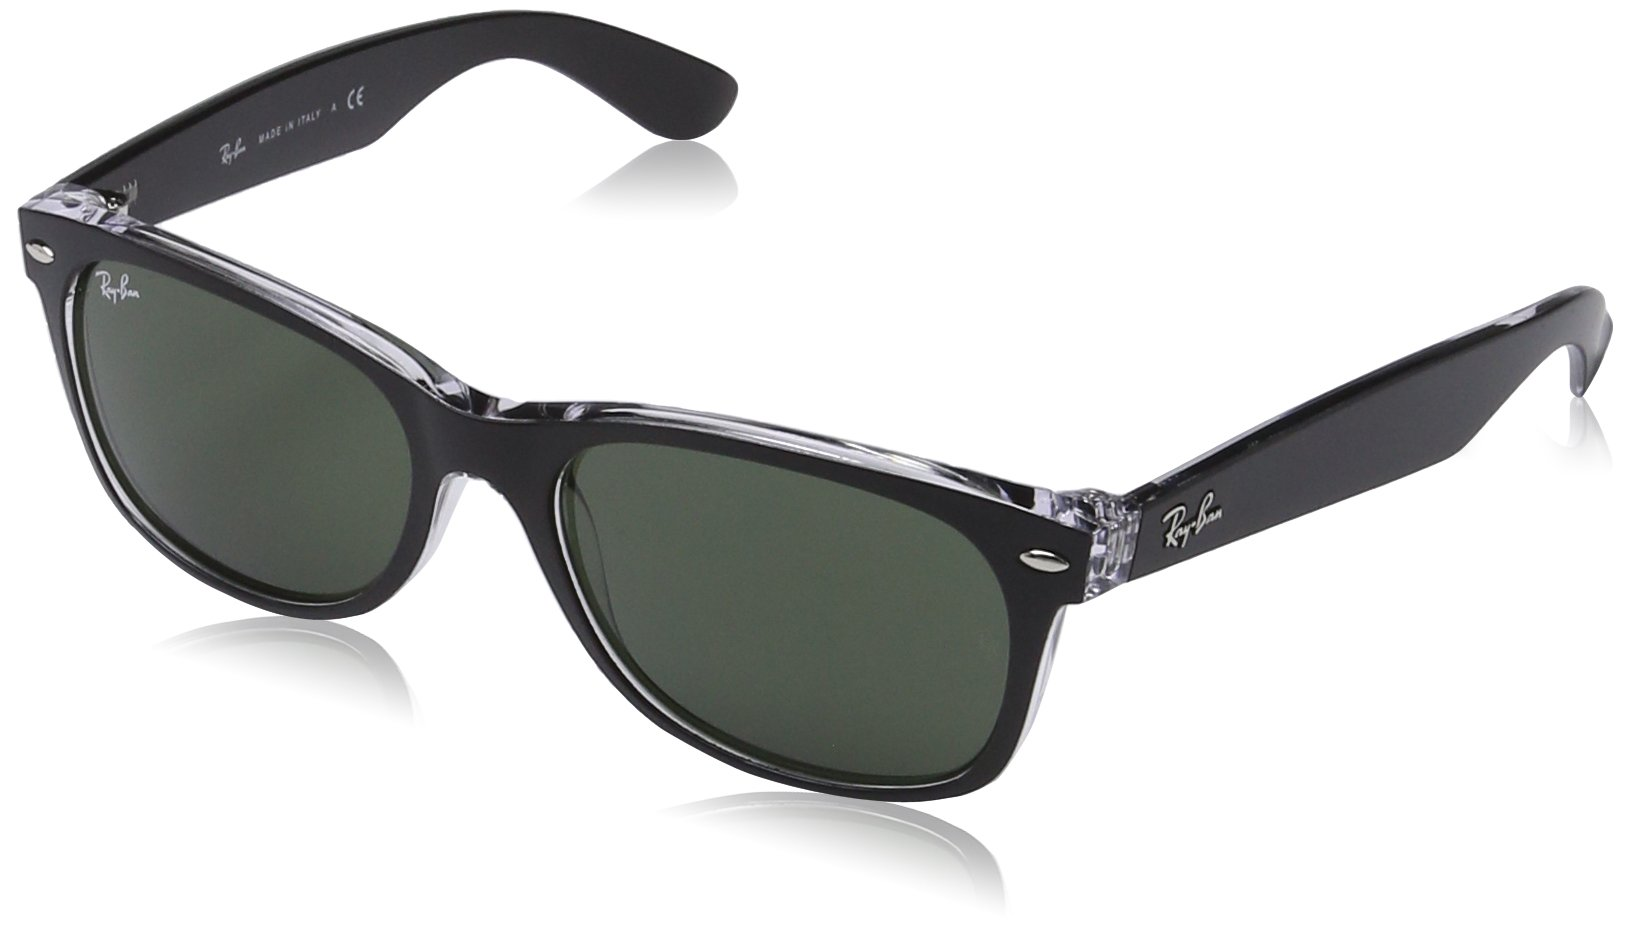 RAY-BAN RB2132 New Wayfarer Sunglasses, Black On Transparent/Green, 55 mm by RAY-BAN